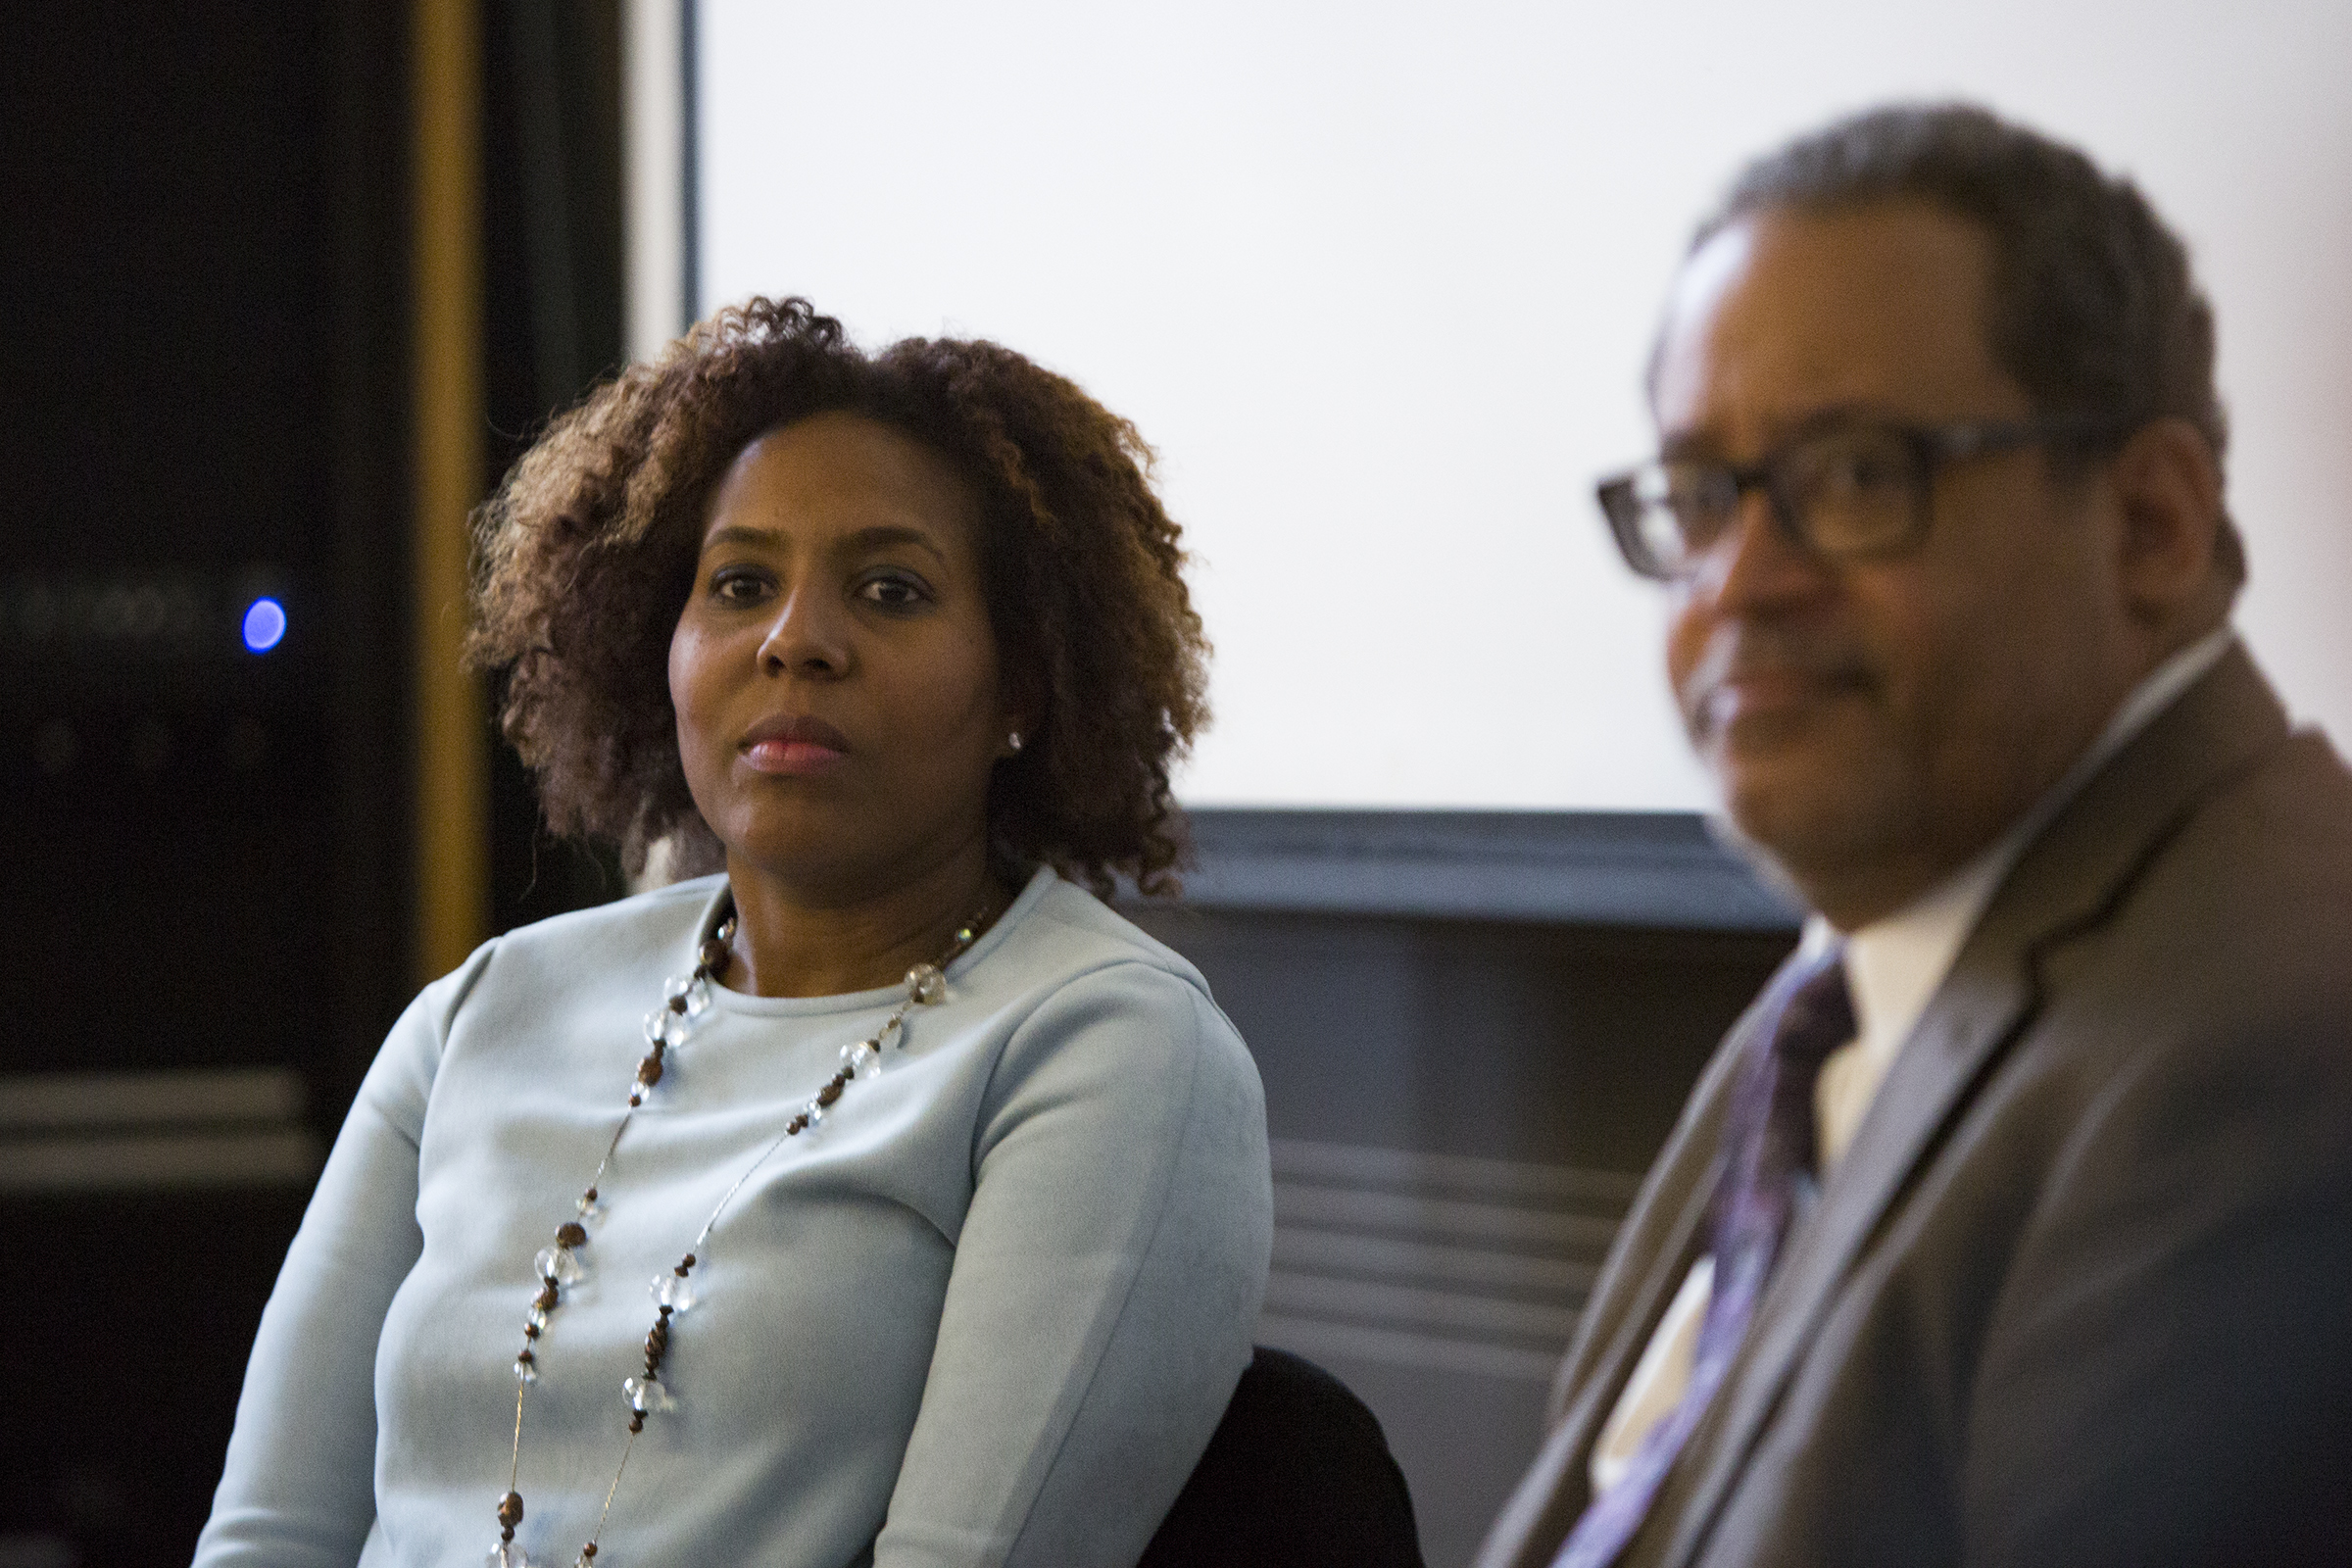 At UPenn´s Fisher-Bennett Hall Building, Professor Salamishah Tillet speaks to her Africana Studies class with Author Michael Eric Dyson. Her class is focused on Beyonce, Jay-Z, Solange, and the meaning of American music. April 3rd. James Blocker / Staff Photographer